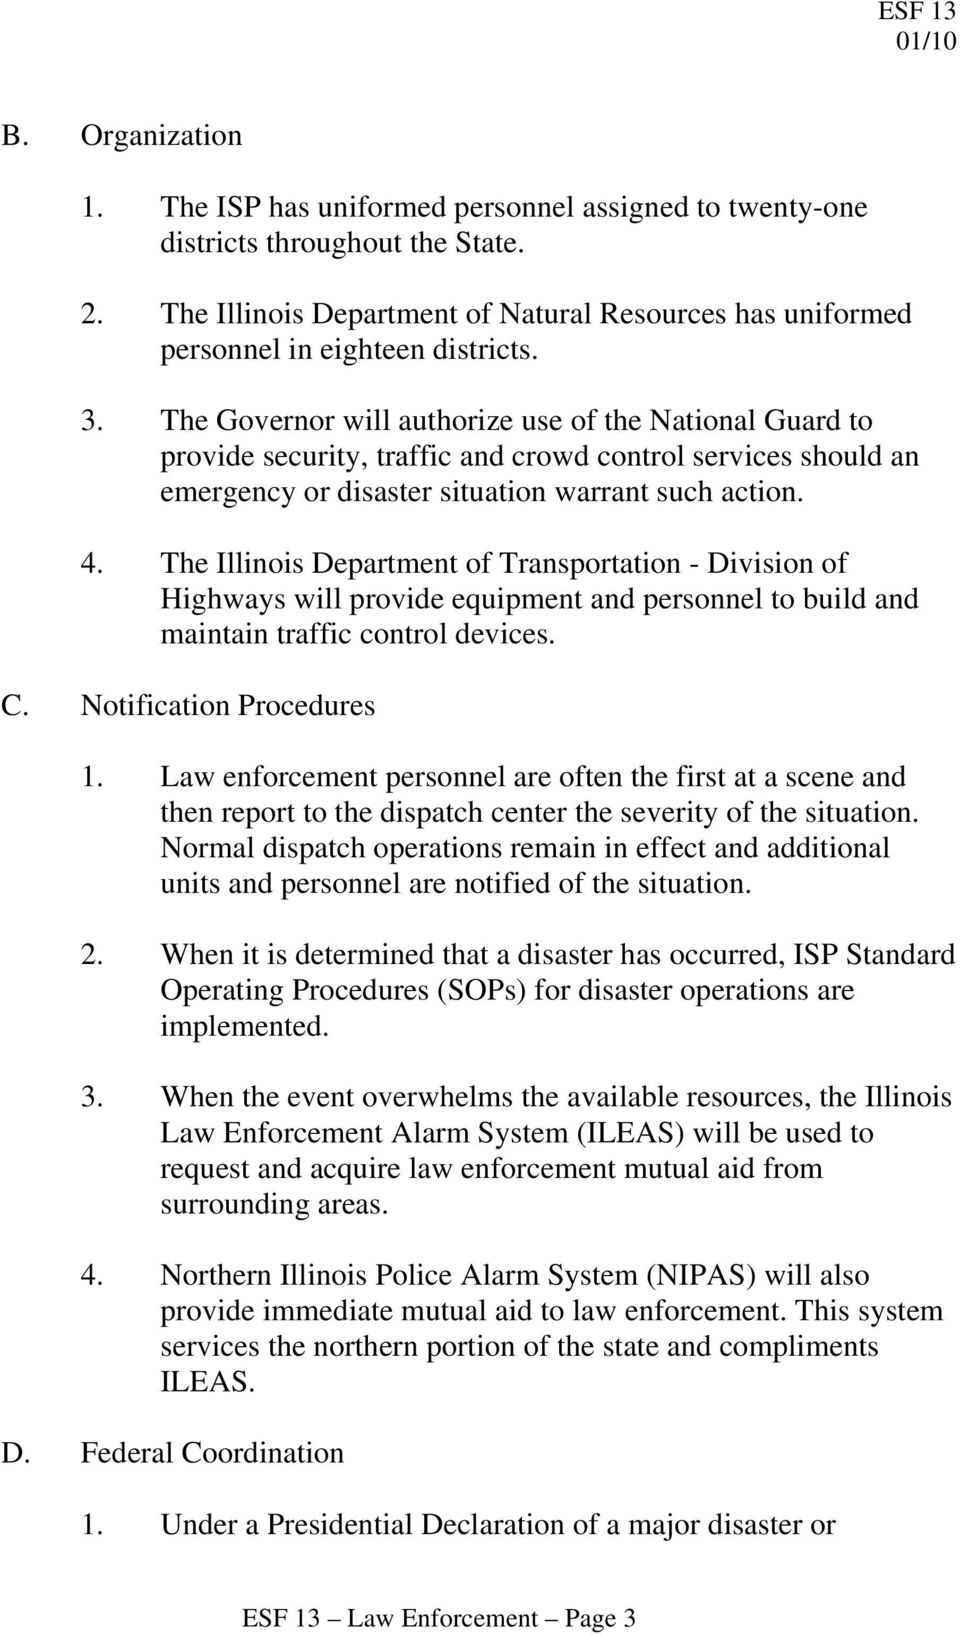 The Illinois Department of Transportation - Division of Highways will provide equipment and personnel to build and maintain traffic control devices. C. Notification Procedures 1.